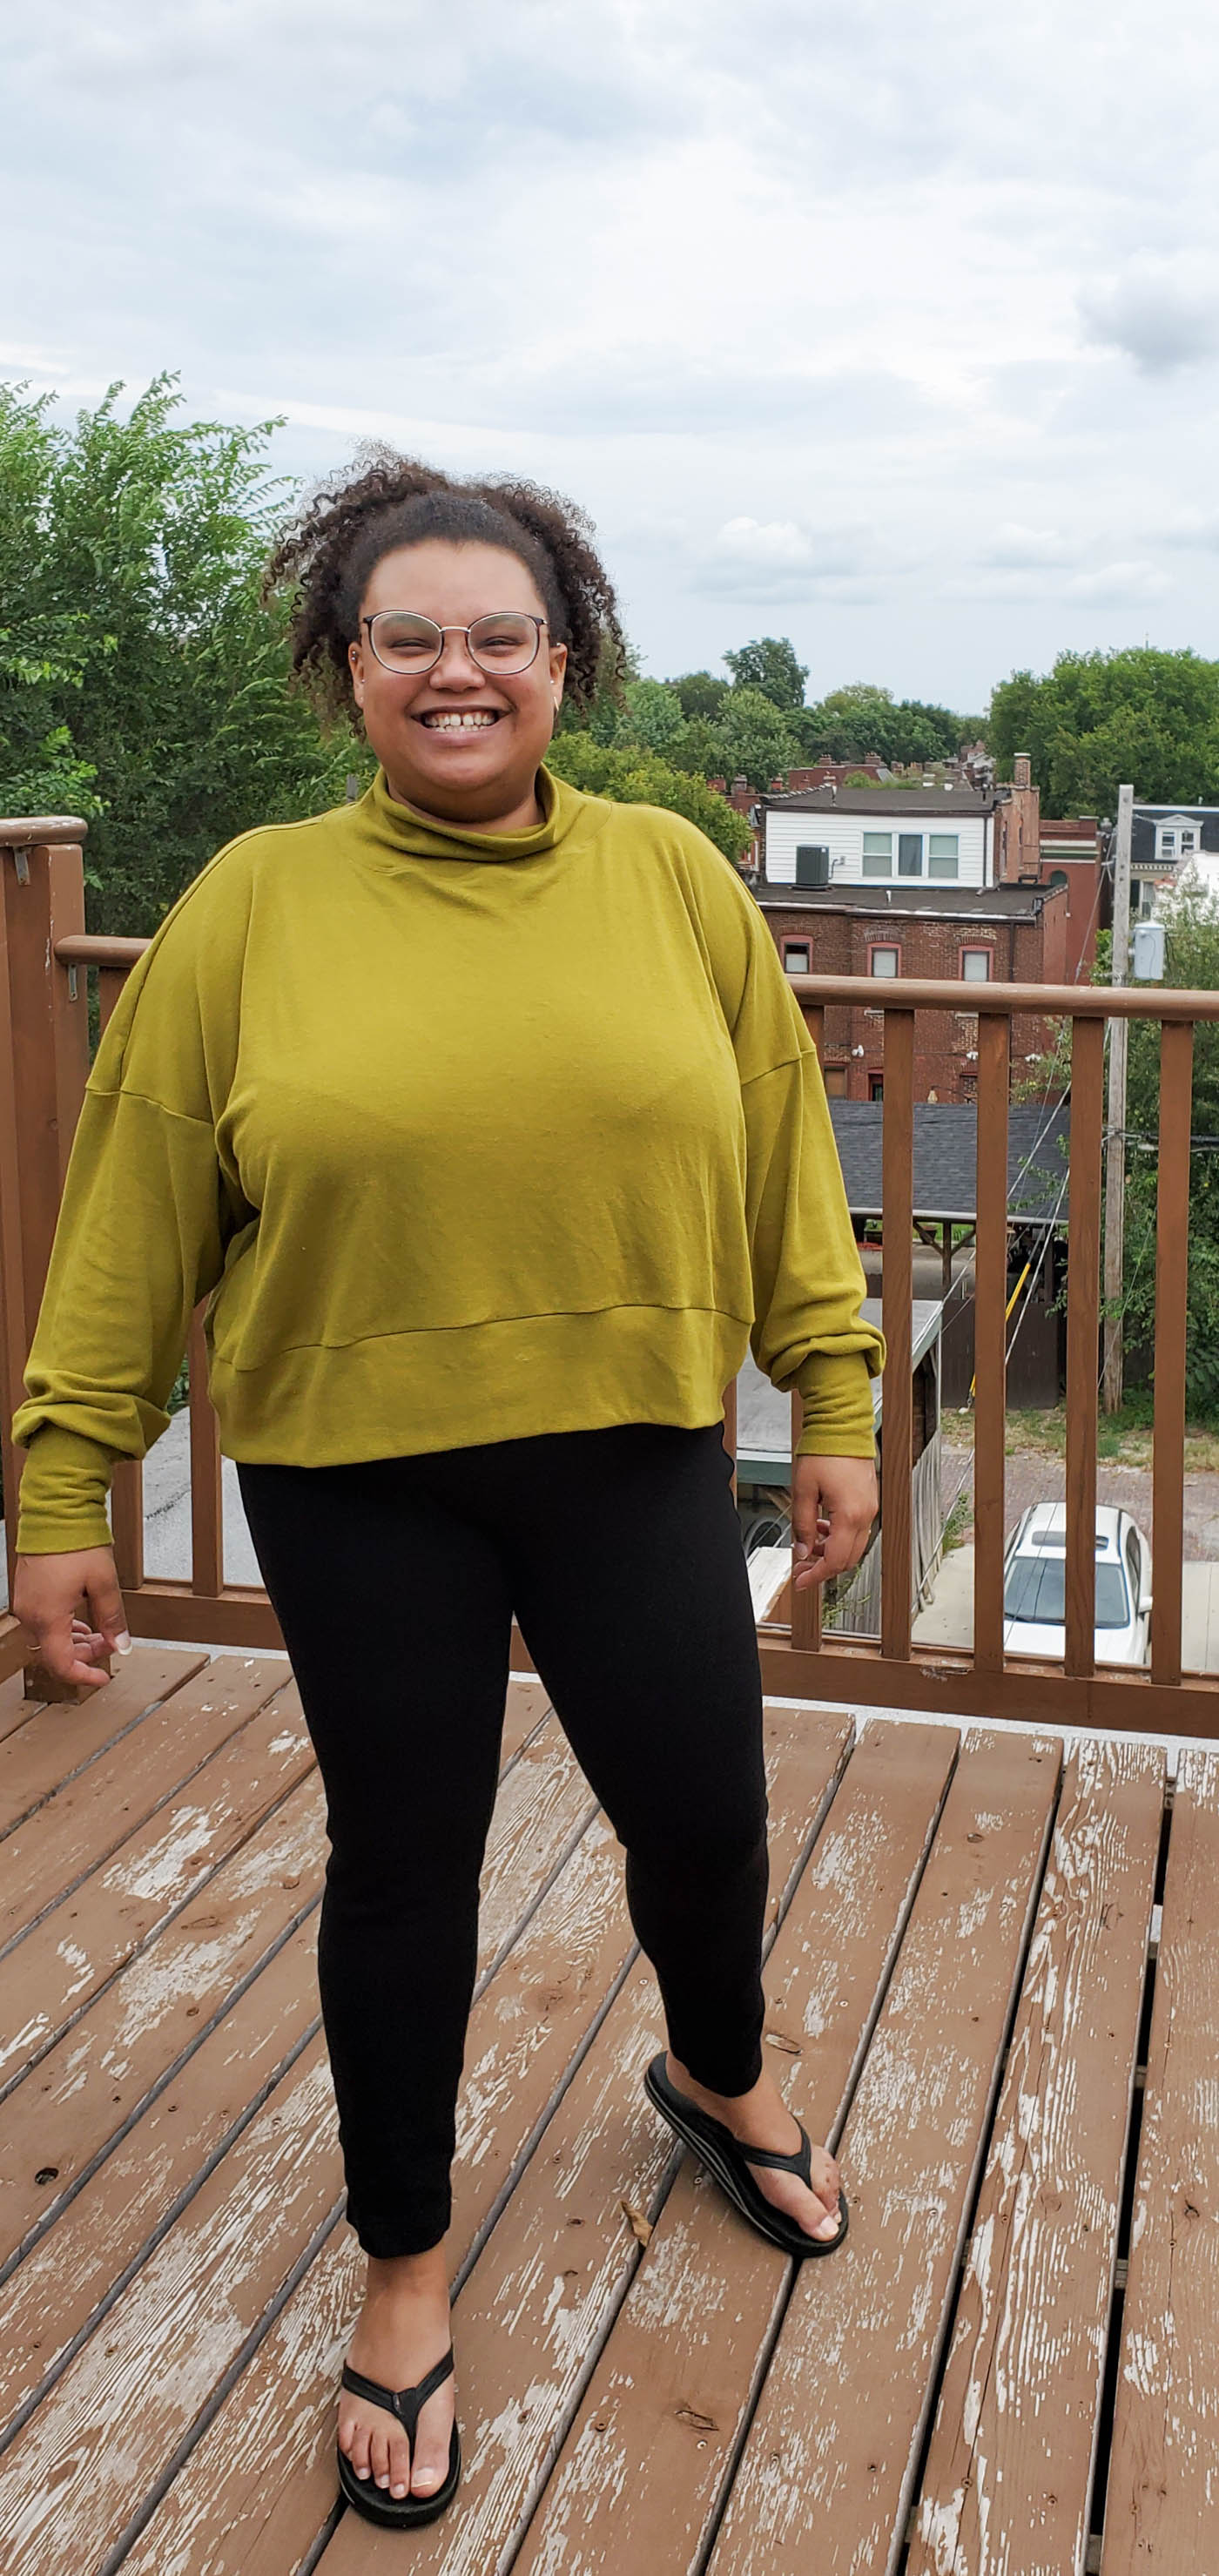 Women wearing a Hosta Tee long sleeve in Bamboo Cotton Stretch Rib in Chartreuse and black jeans.  Women is standing on an outdoor patio in the city with cloudy blue skies and looking straight on to the camera and smiling.